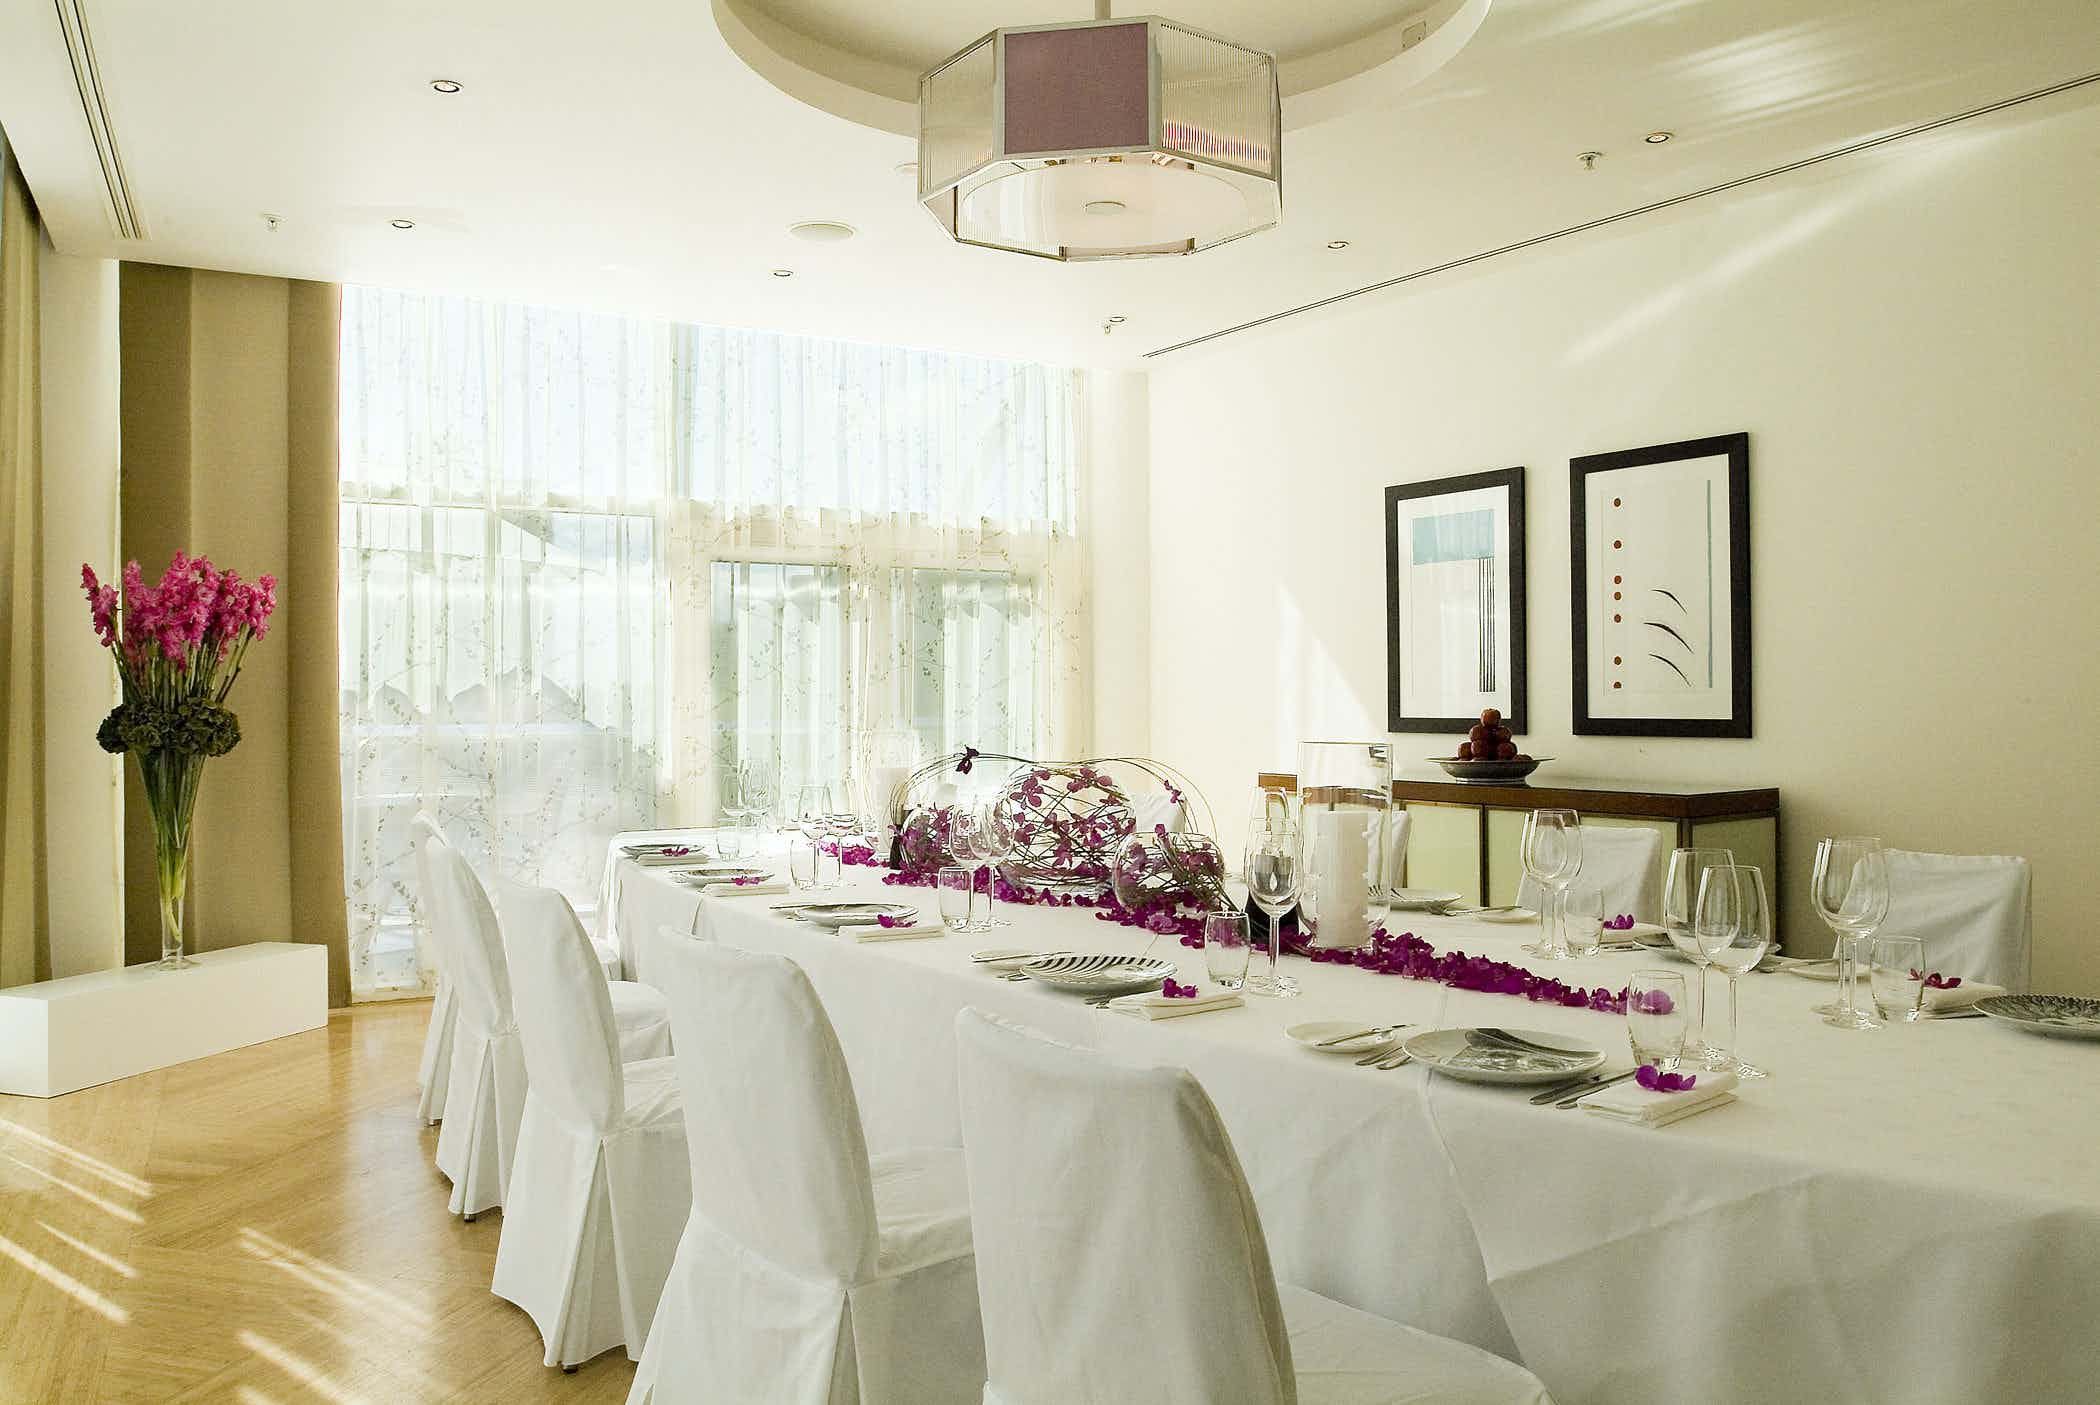 Private Dining Room, The Lowry Hotel